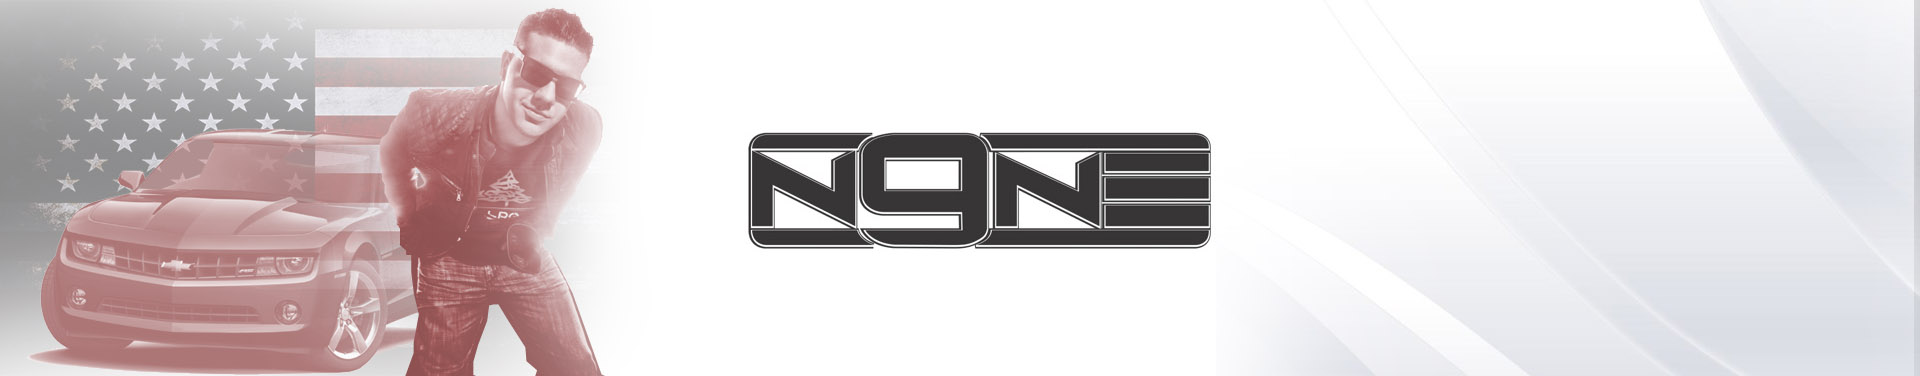 n9ne_dj_mixes_online_dope_djs_best_east_coast